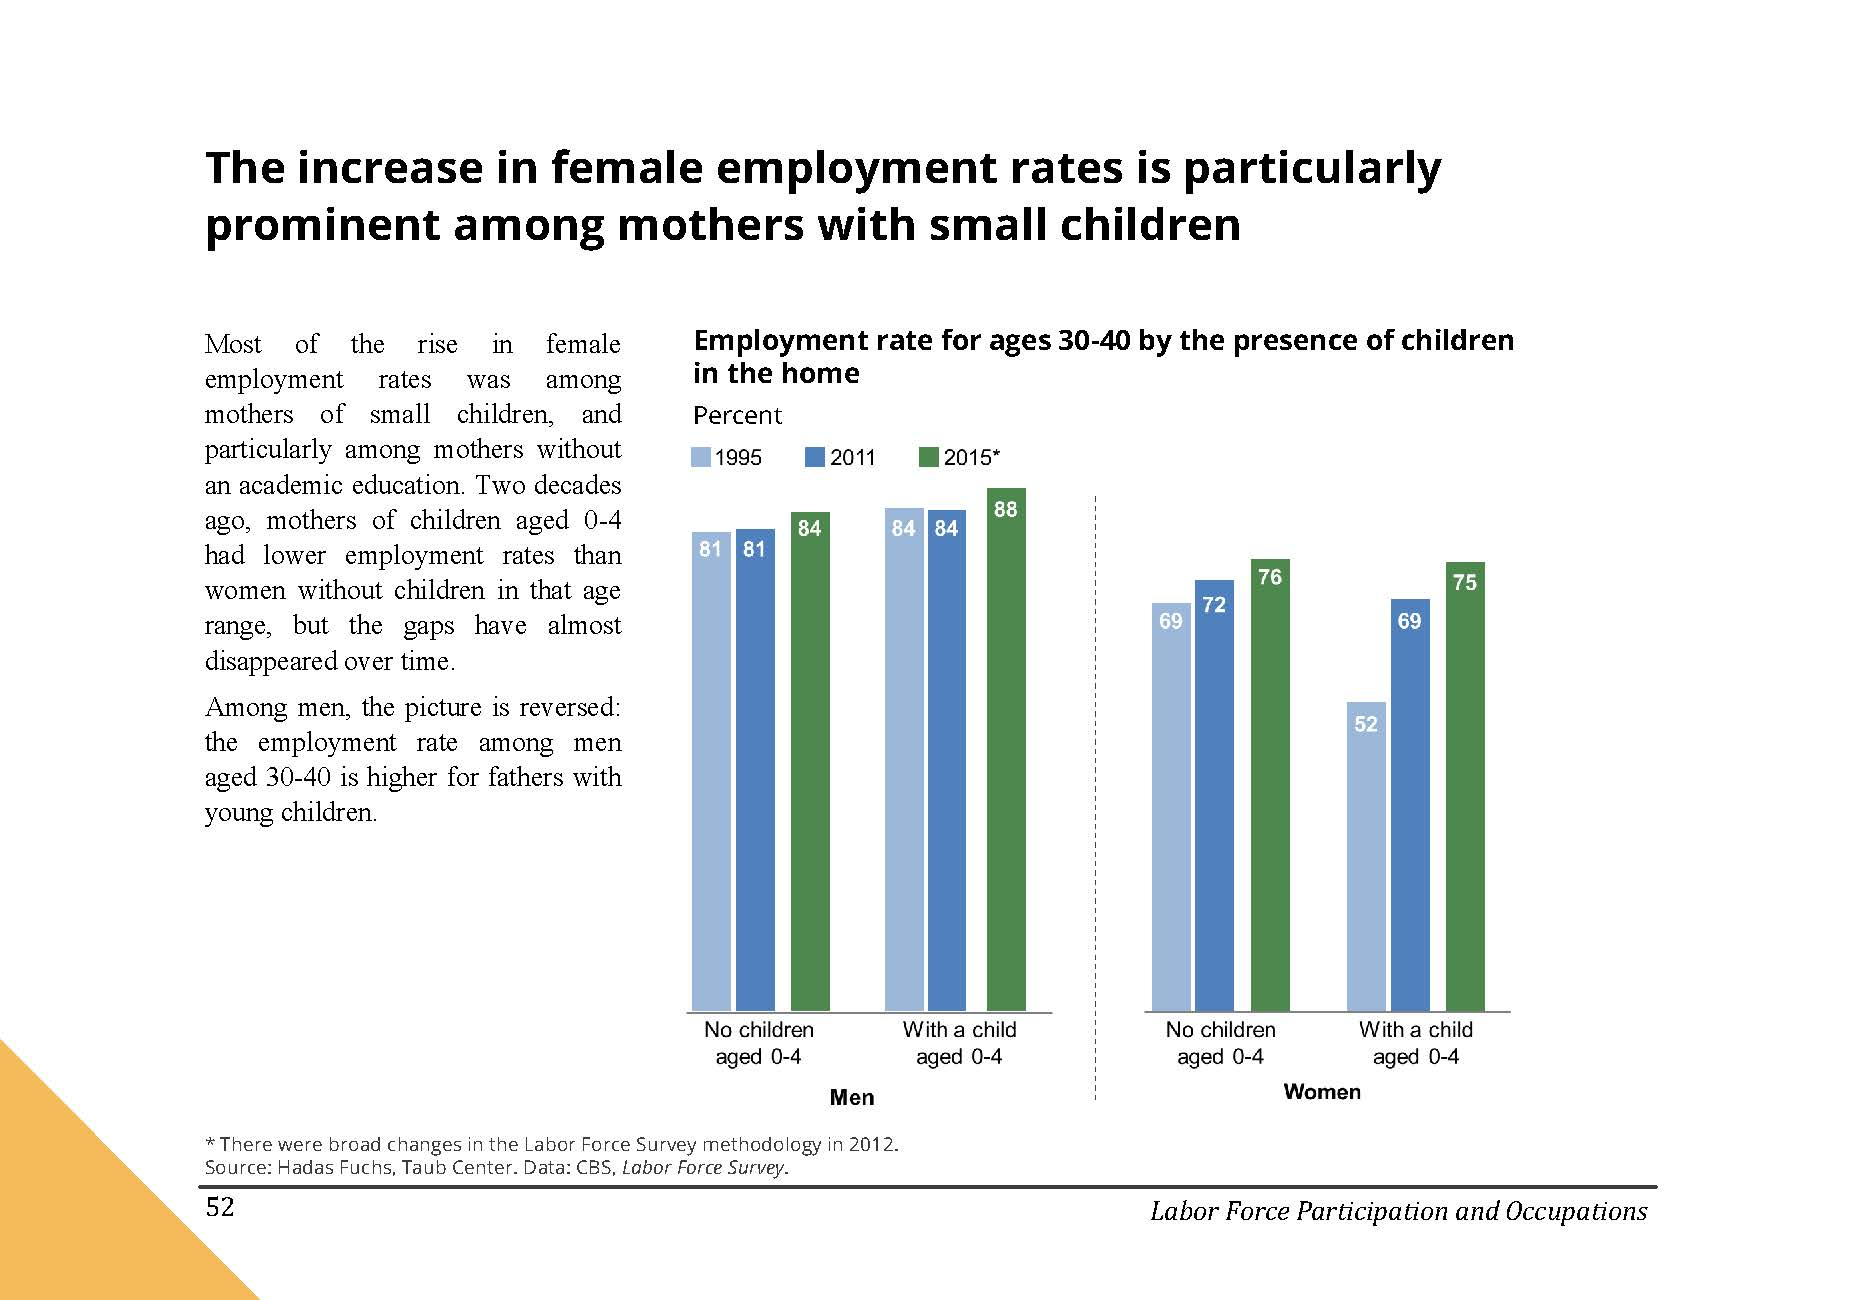 The increase in female employment rates is particularly prominent among mothers with small children in Israel